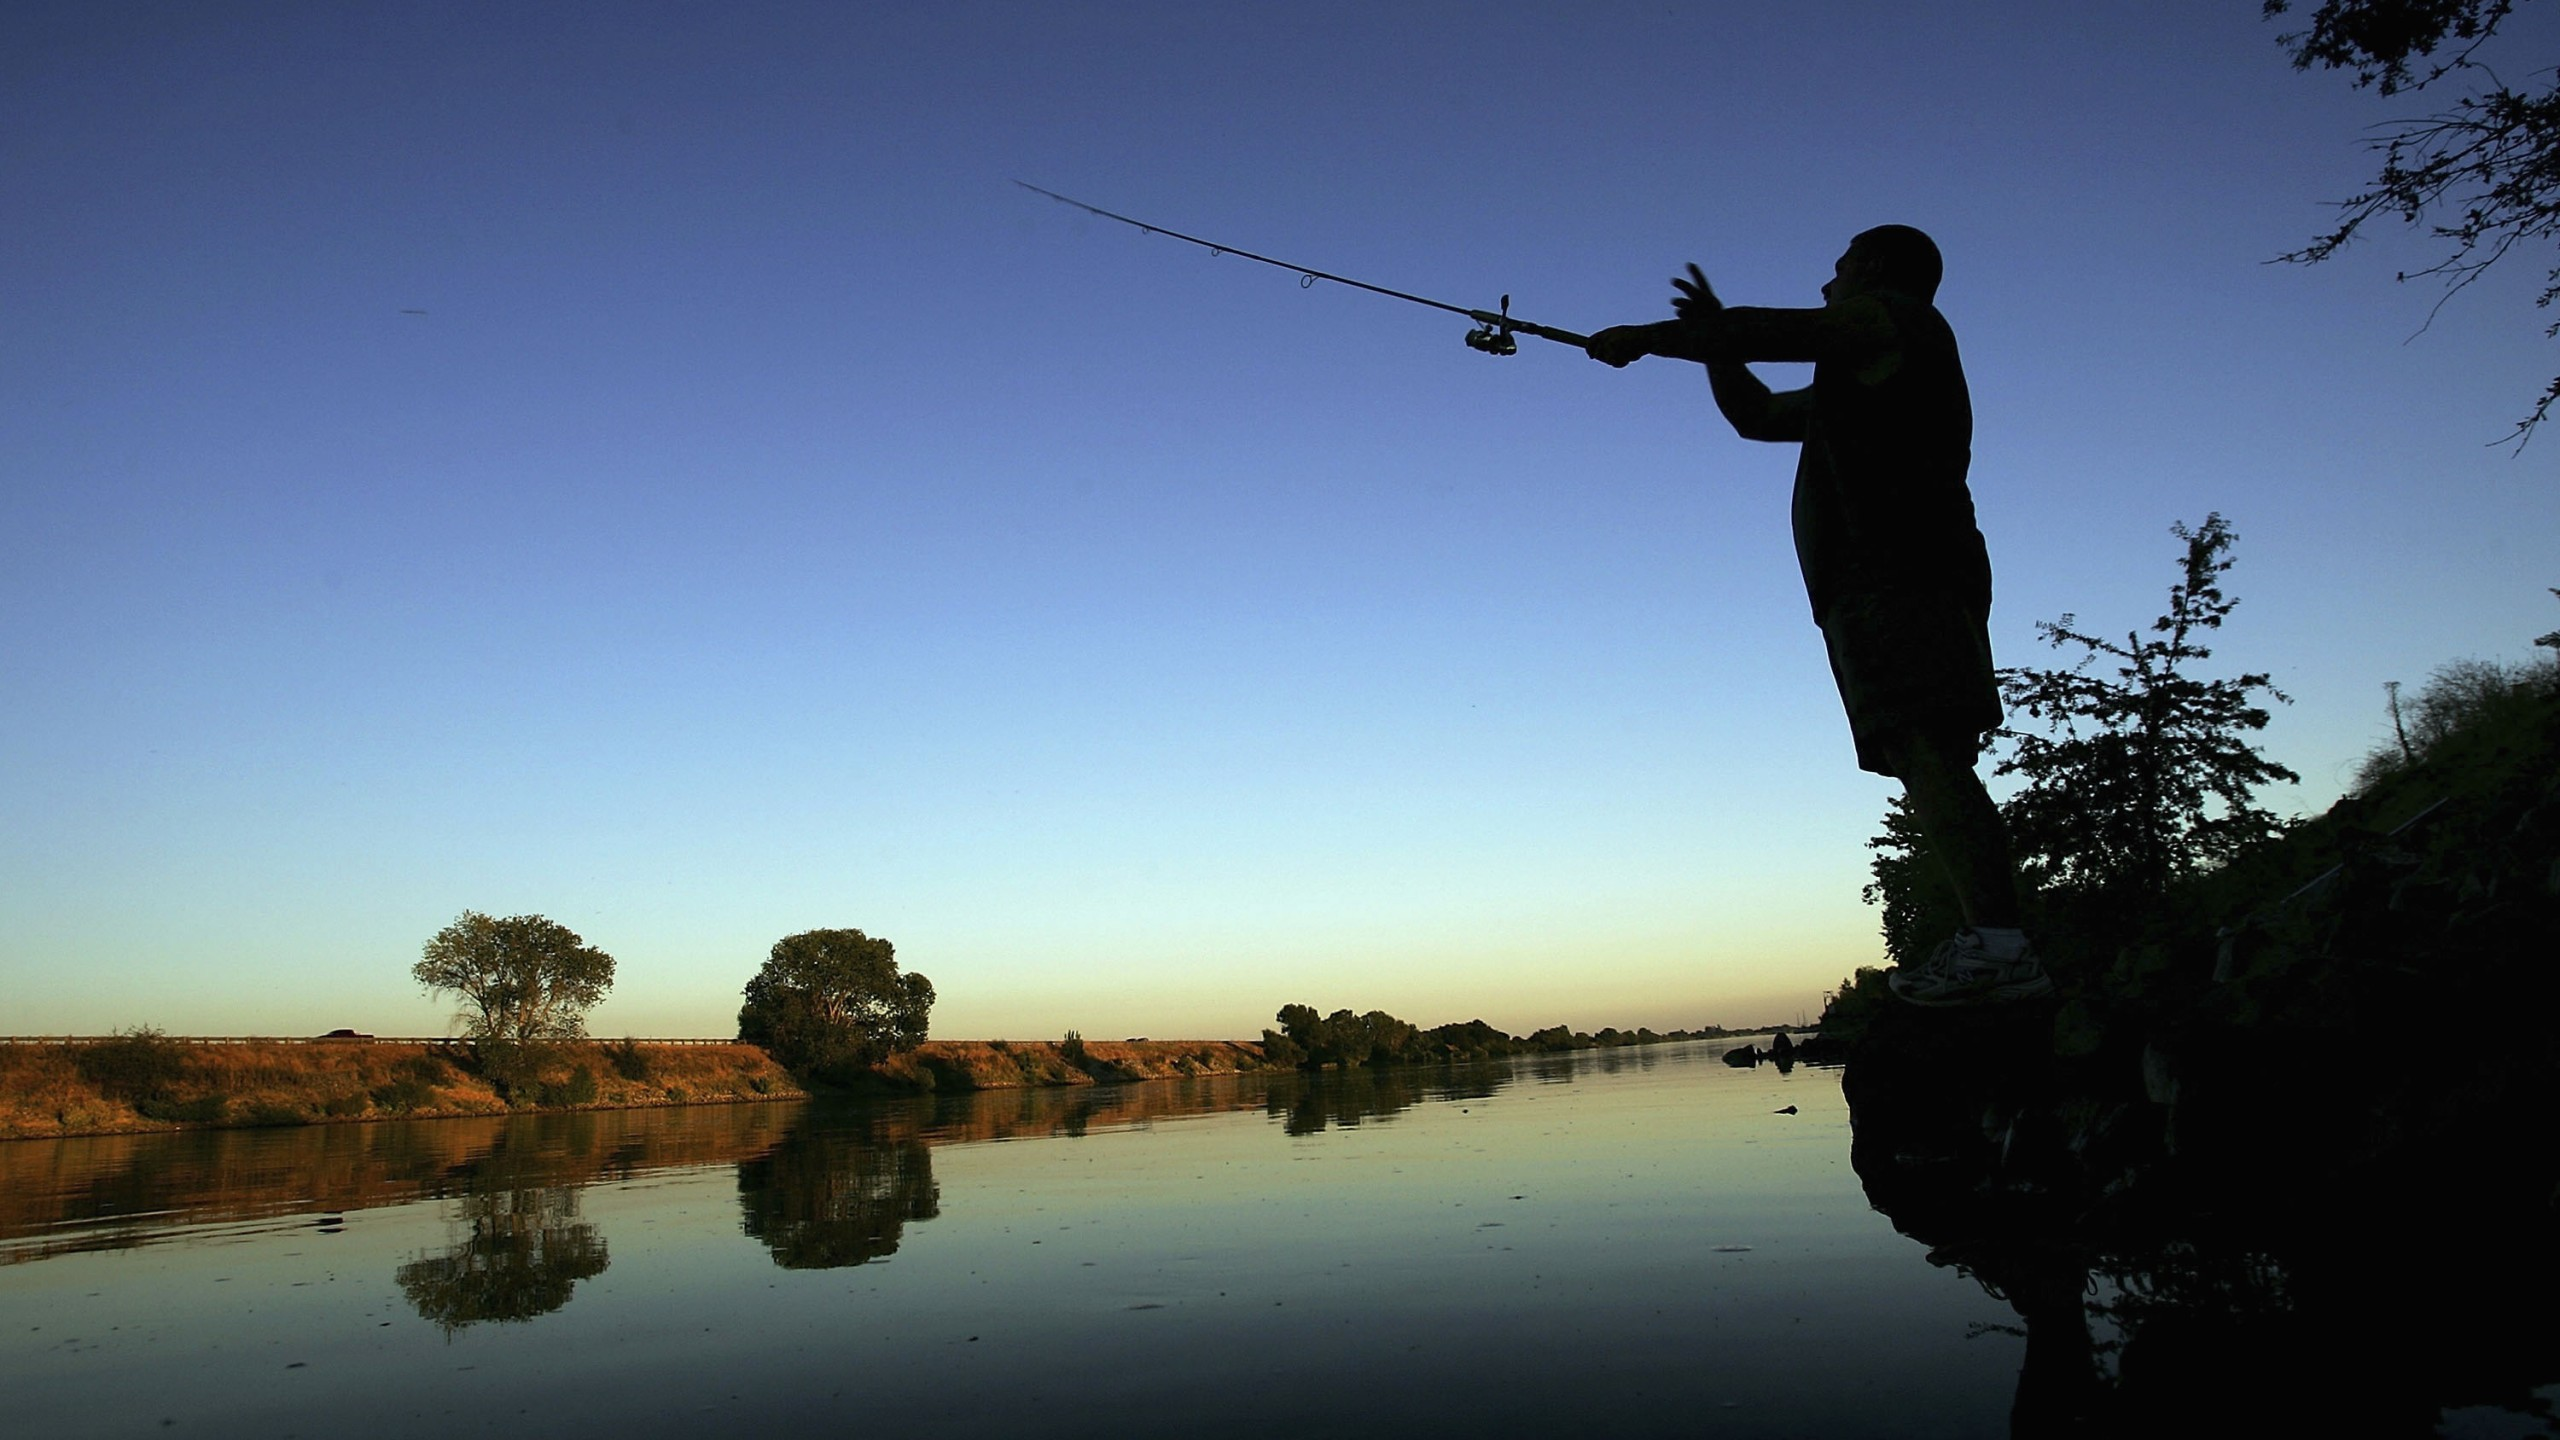 A fisherman casts his line into the Sacramento River in the Sacramento-San Joaquin River Delta on September 29, 2005 south of Sacramento, California. (Credit: David McNew/Getty Images)